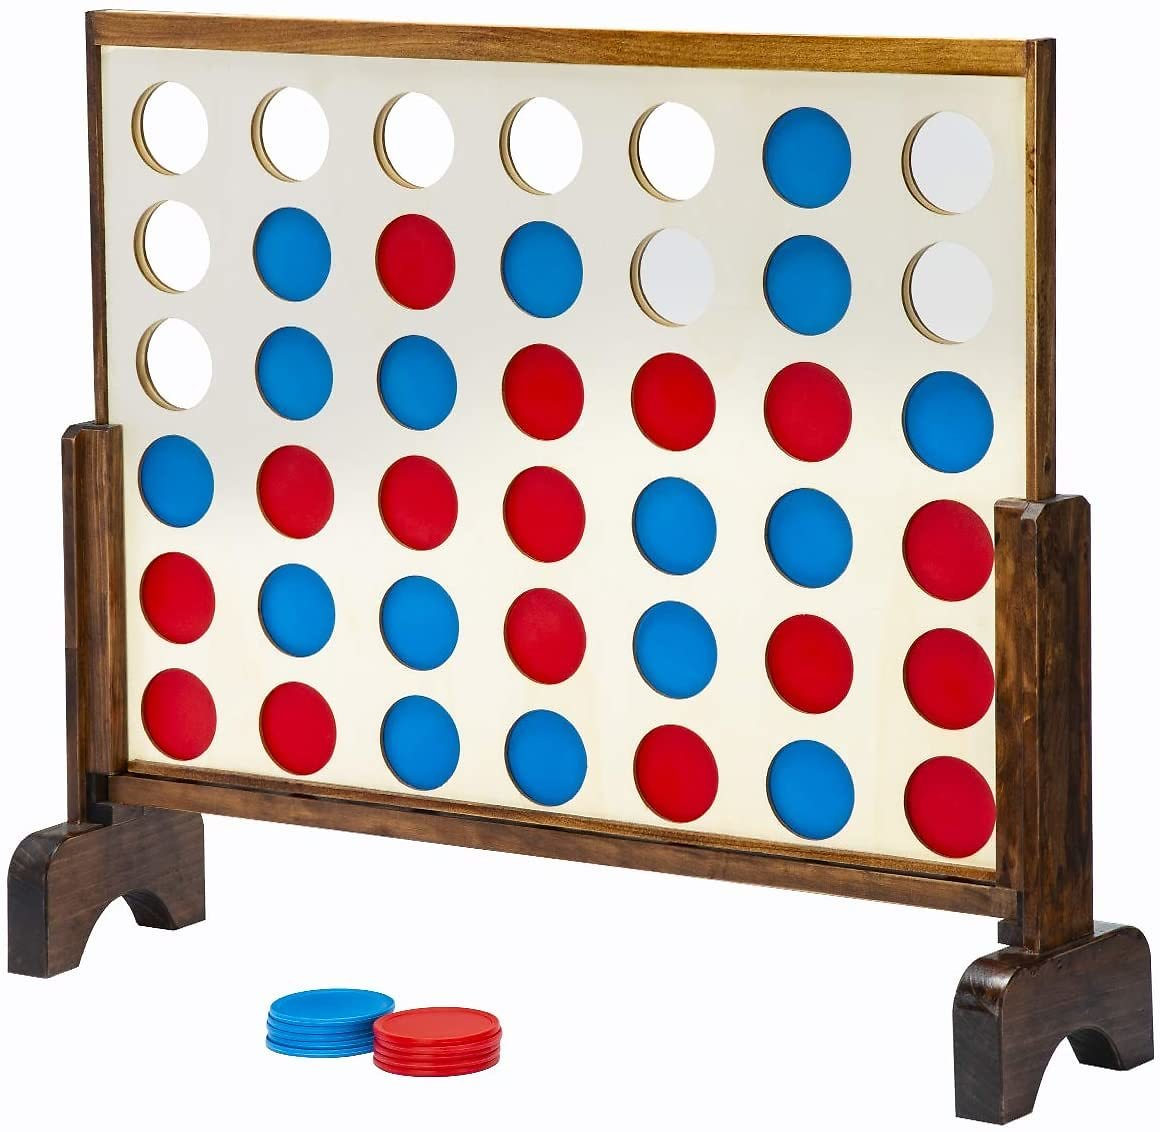 Up to 50% Off Giant Wooden 4 in a Row Game with Coins and Portable Carry Case